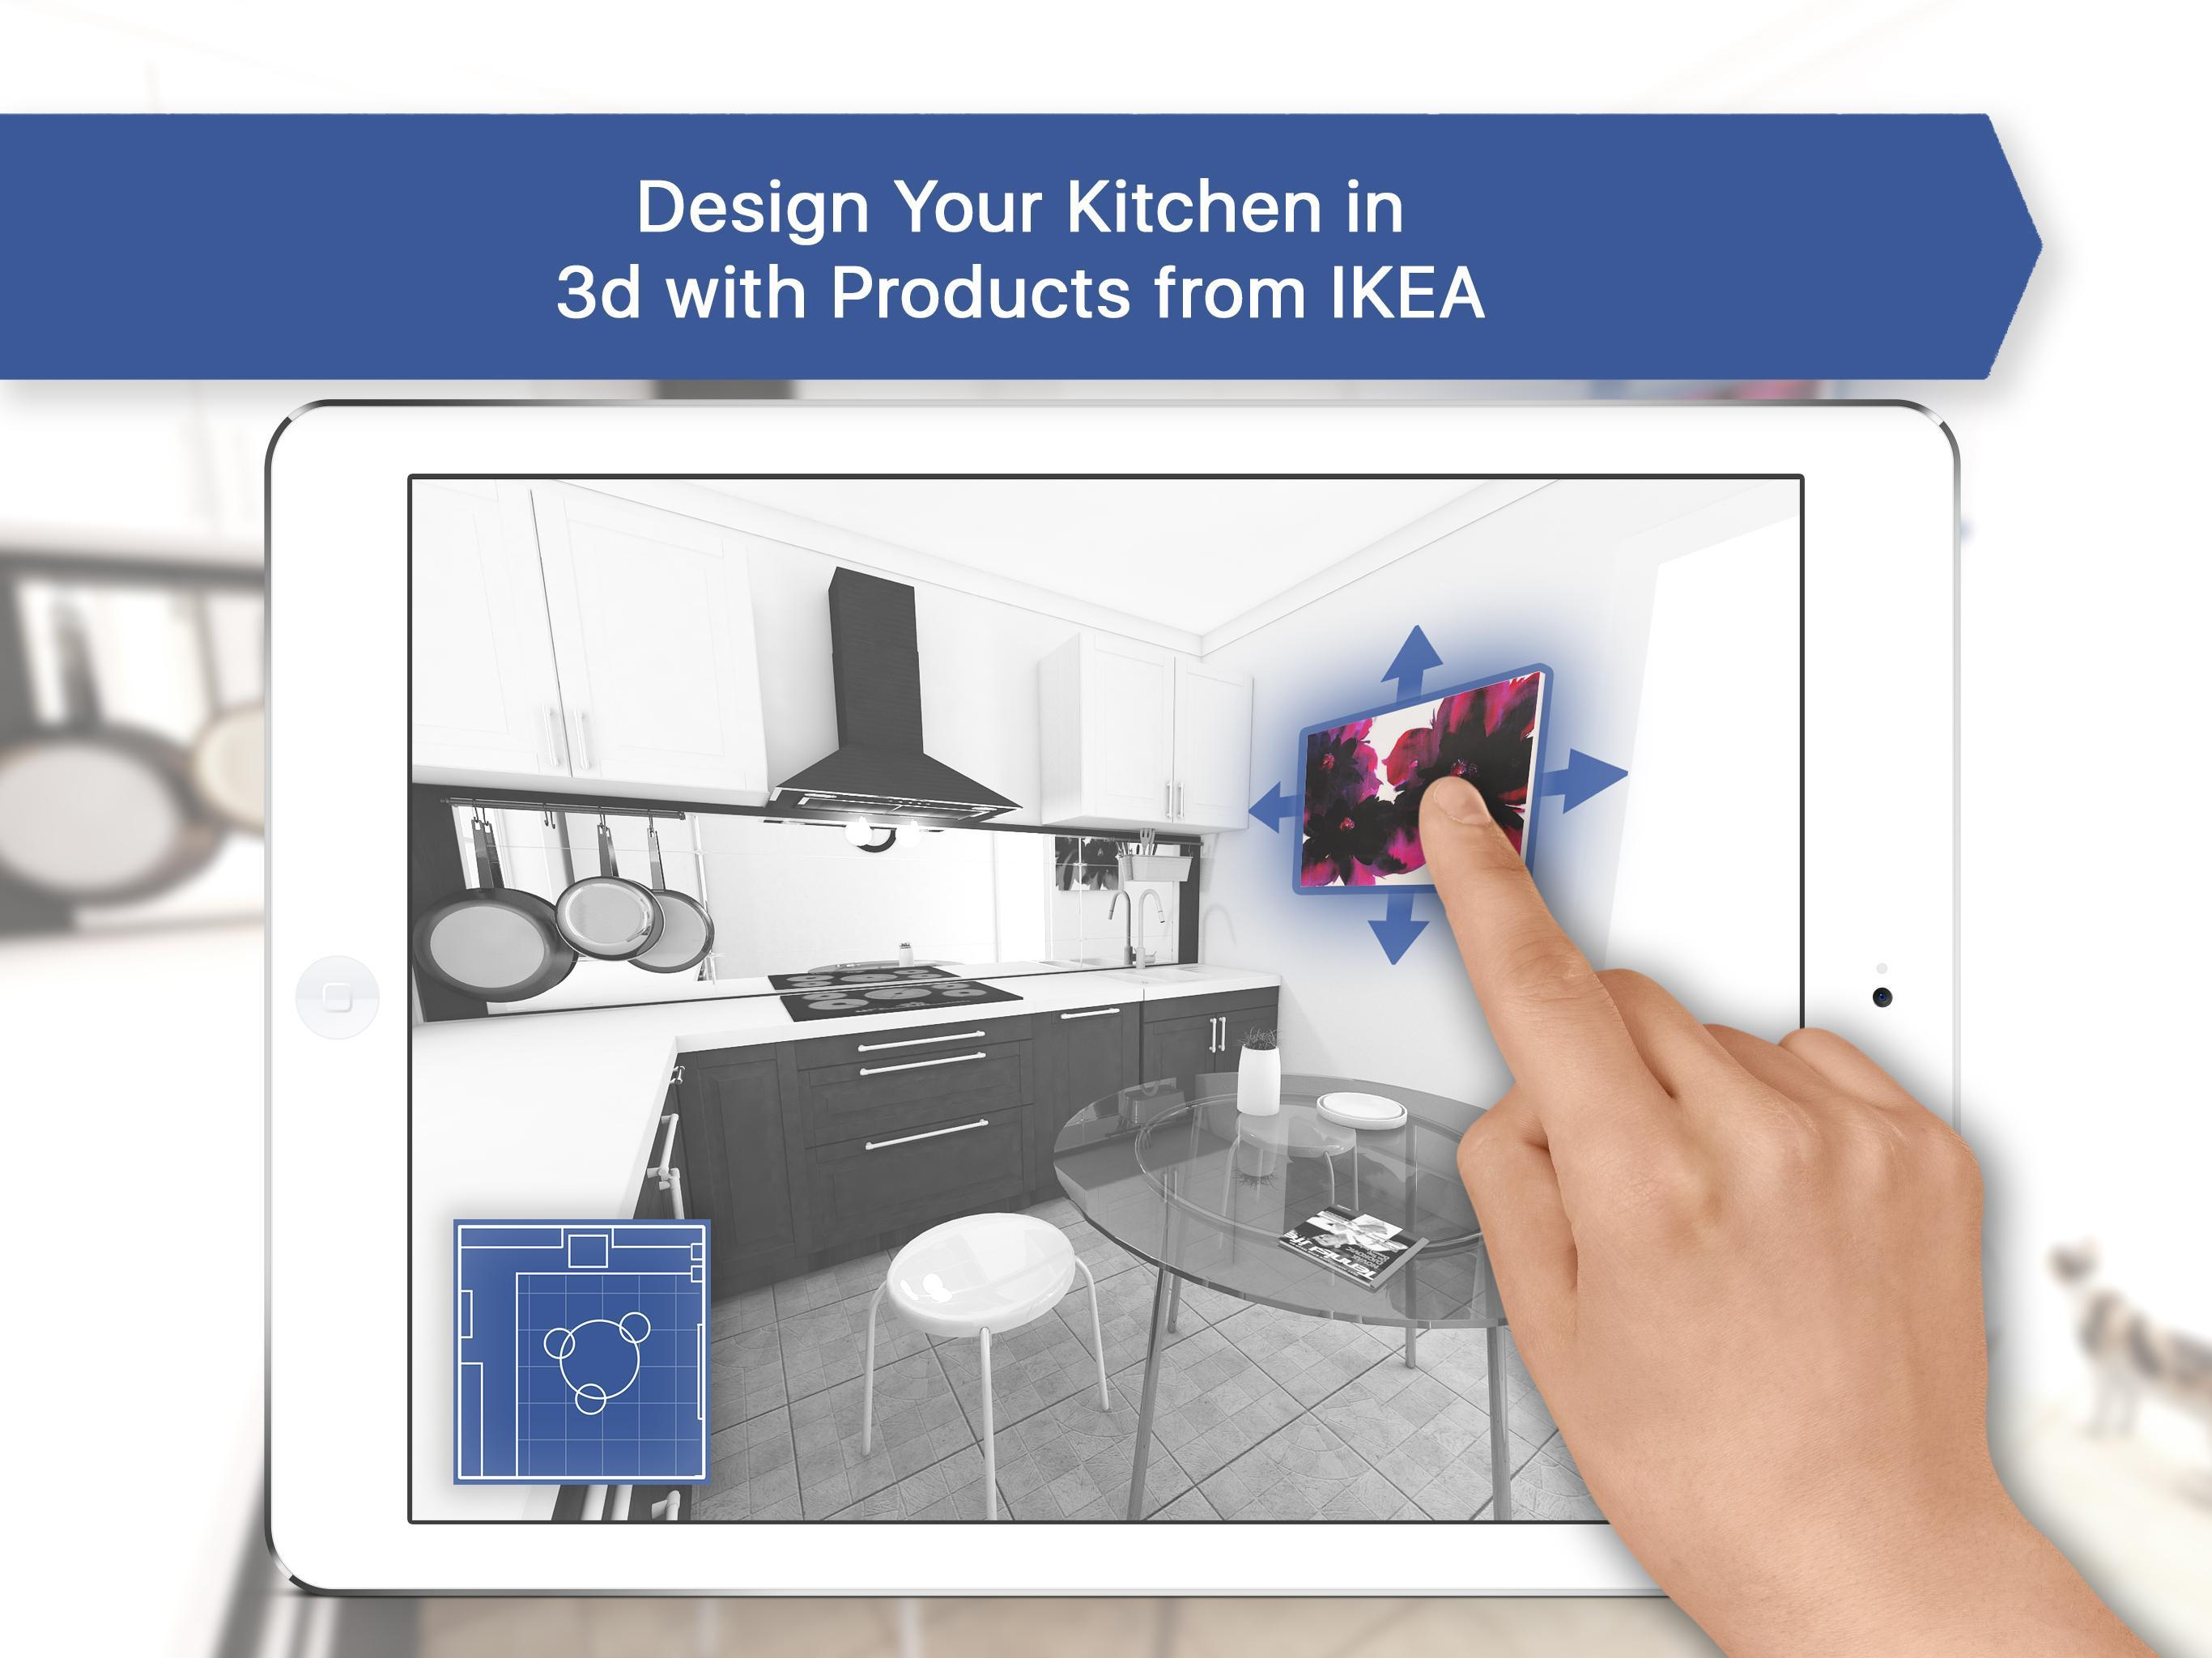 3D Kitchen Design for IKEA: Room Interior Planner for